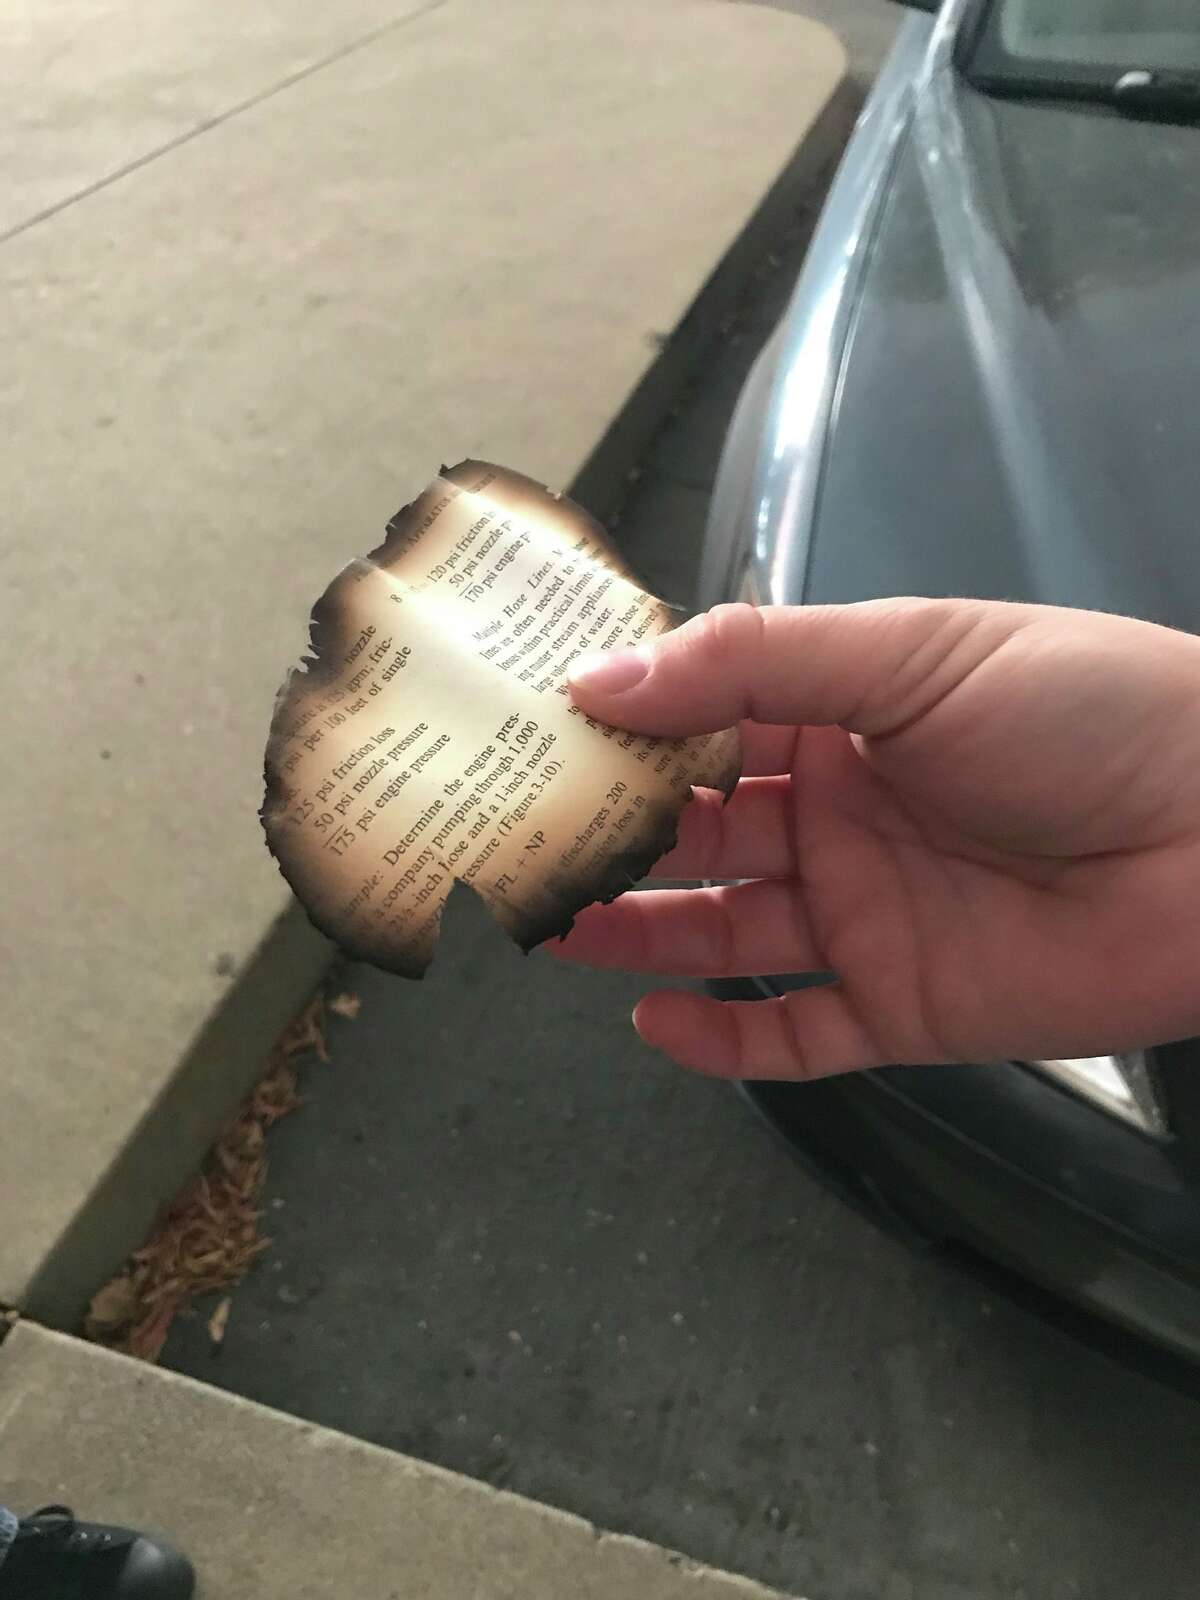 Nicole Kowalczyke of Chico stepped outside to look at smoke from the Camp Fire Thursday morning, and a singed piece of paper fell from the sky.